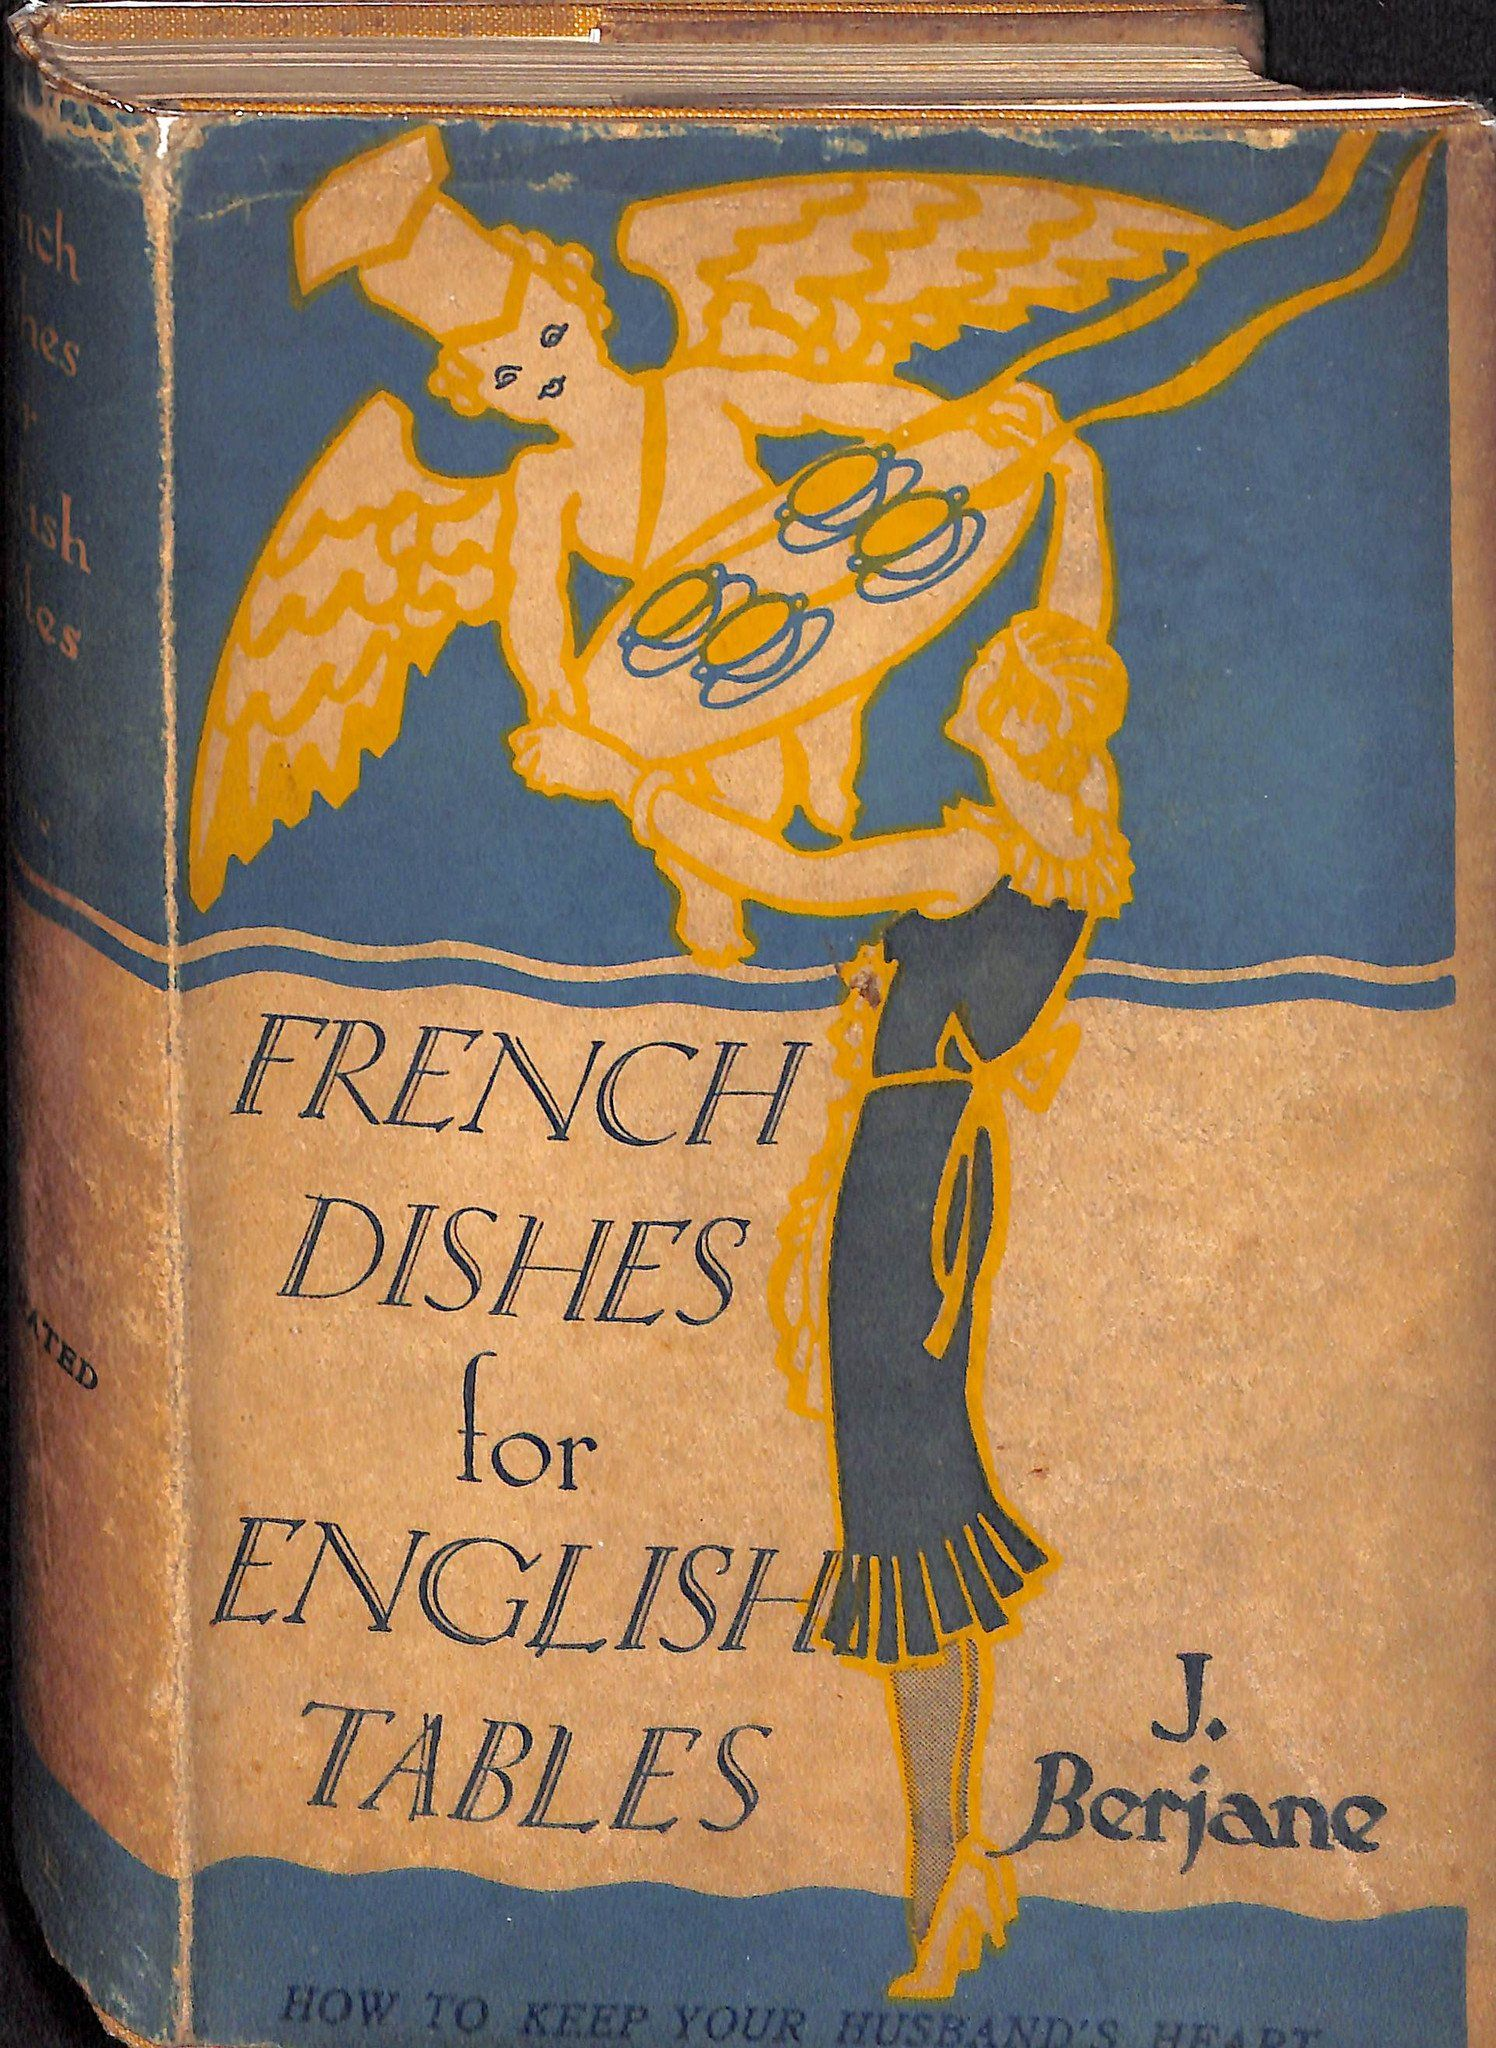 French Dishes for English Tables French dishes, Dishes